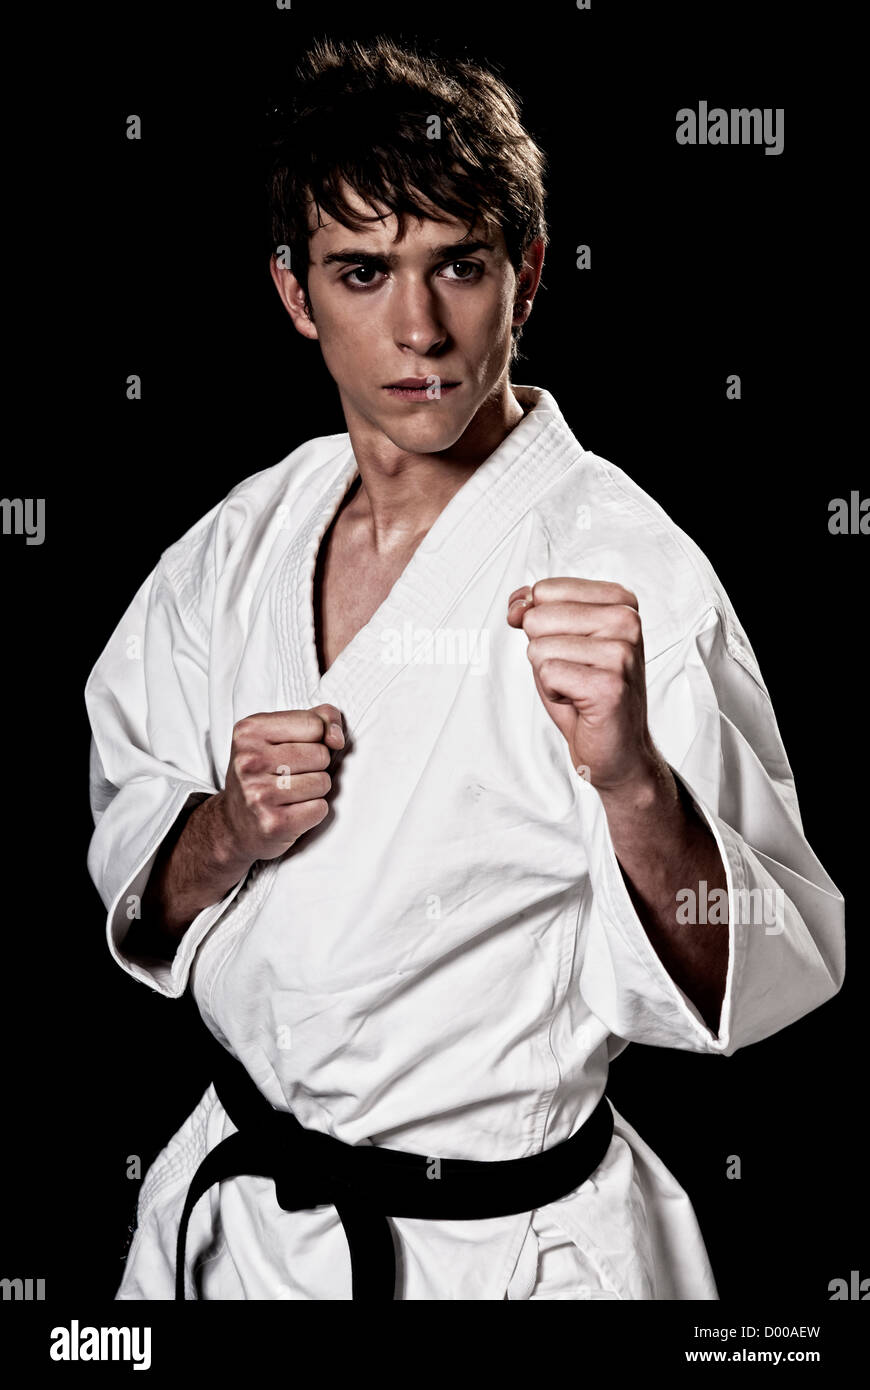 Karate male fighter young high contrast on black background - Stock Image